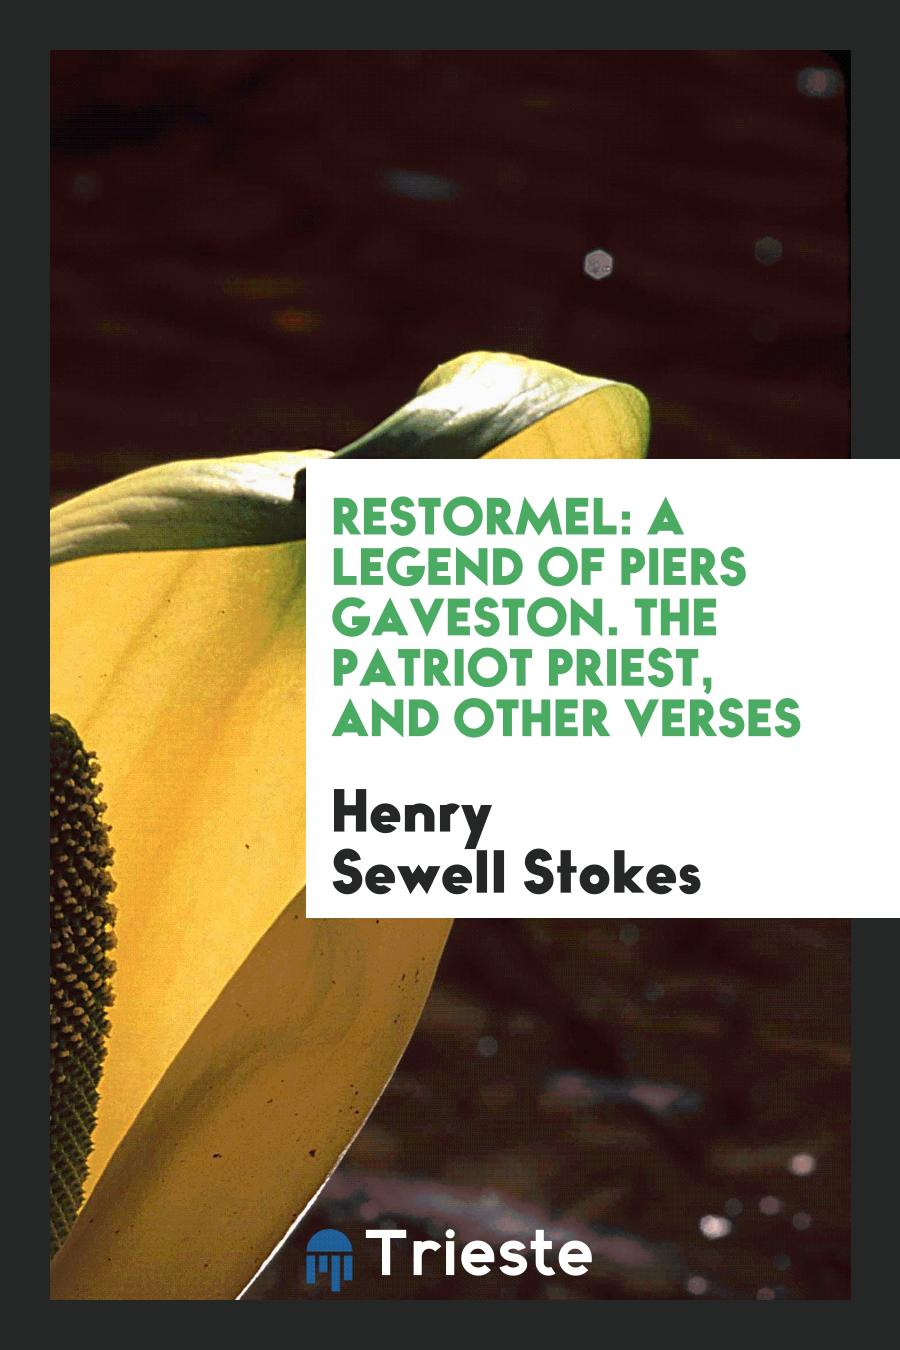 Restormel: A Legend of Piers Gaveston. The Patriot Priest, and Other Verses